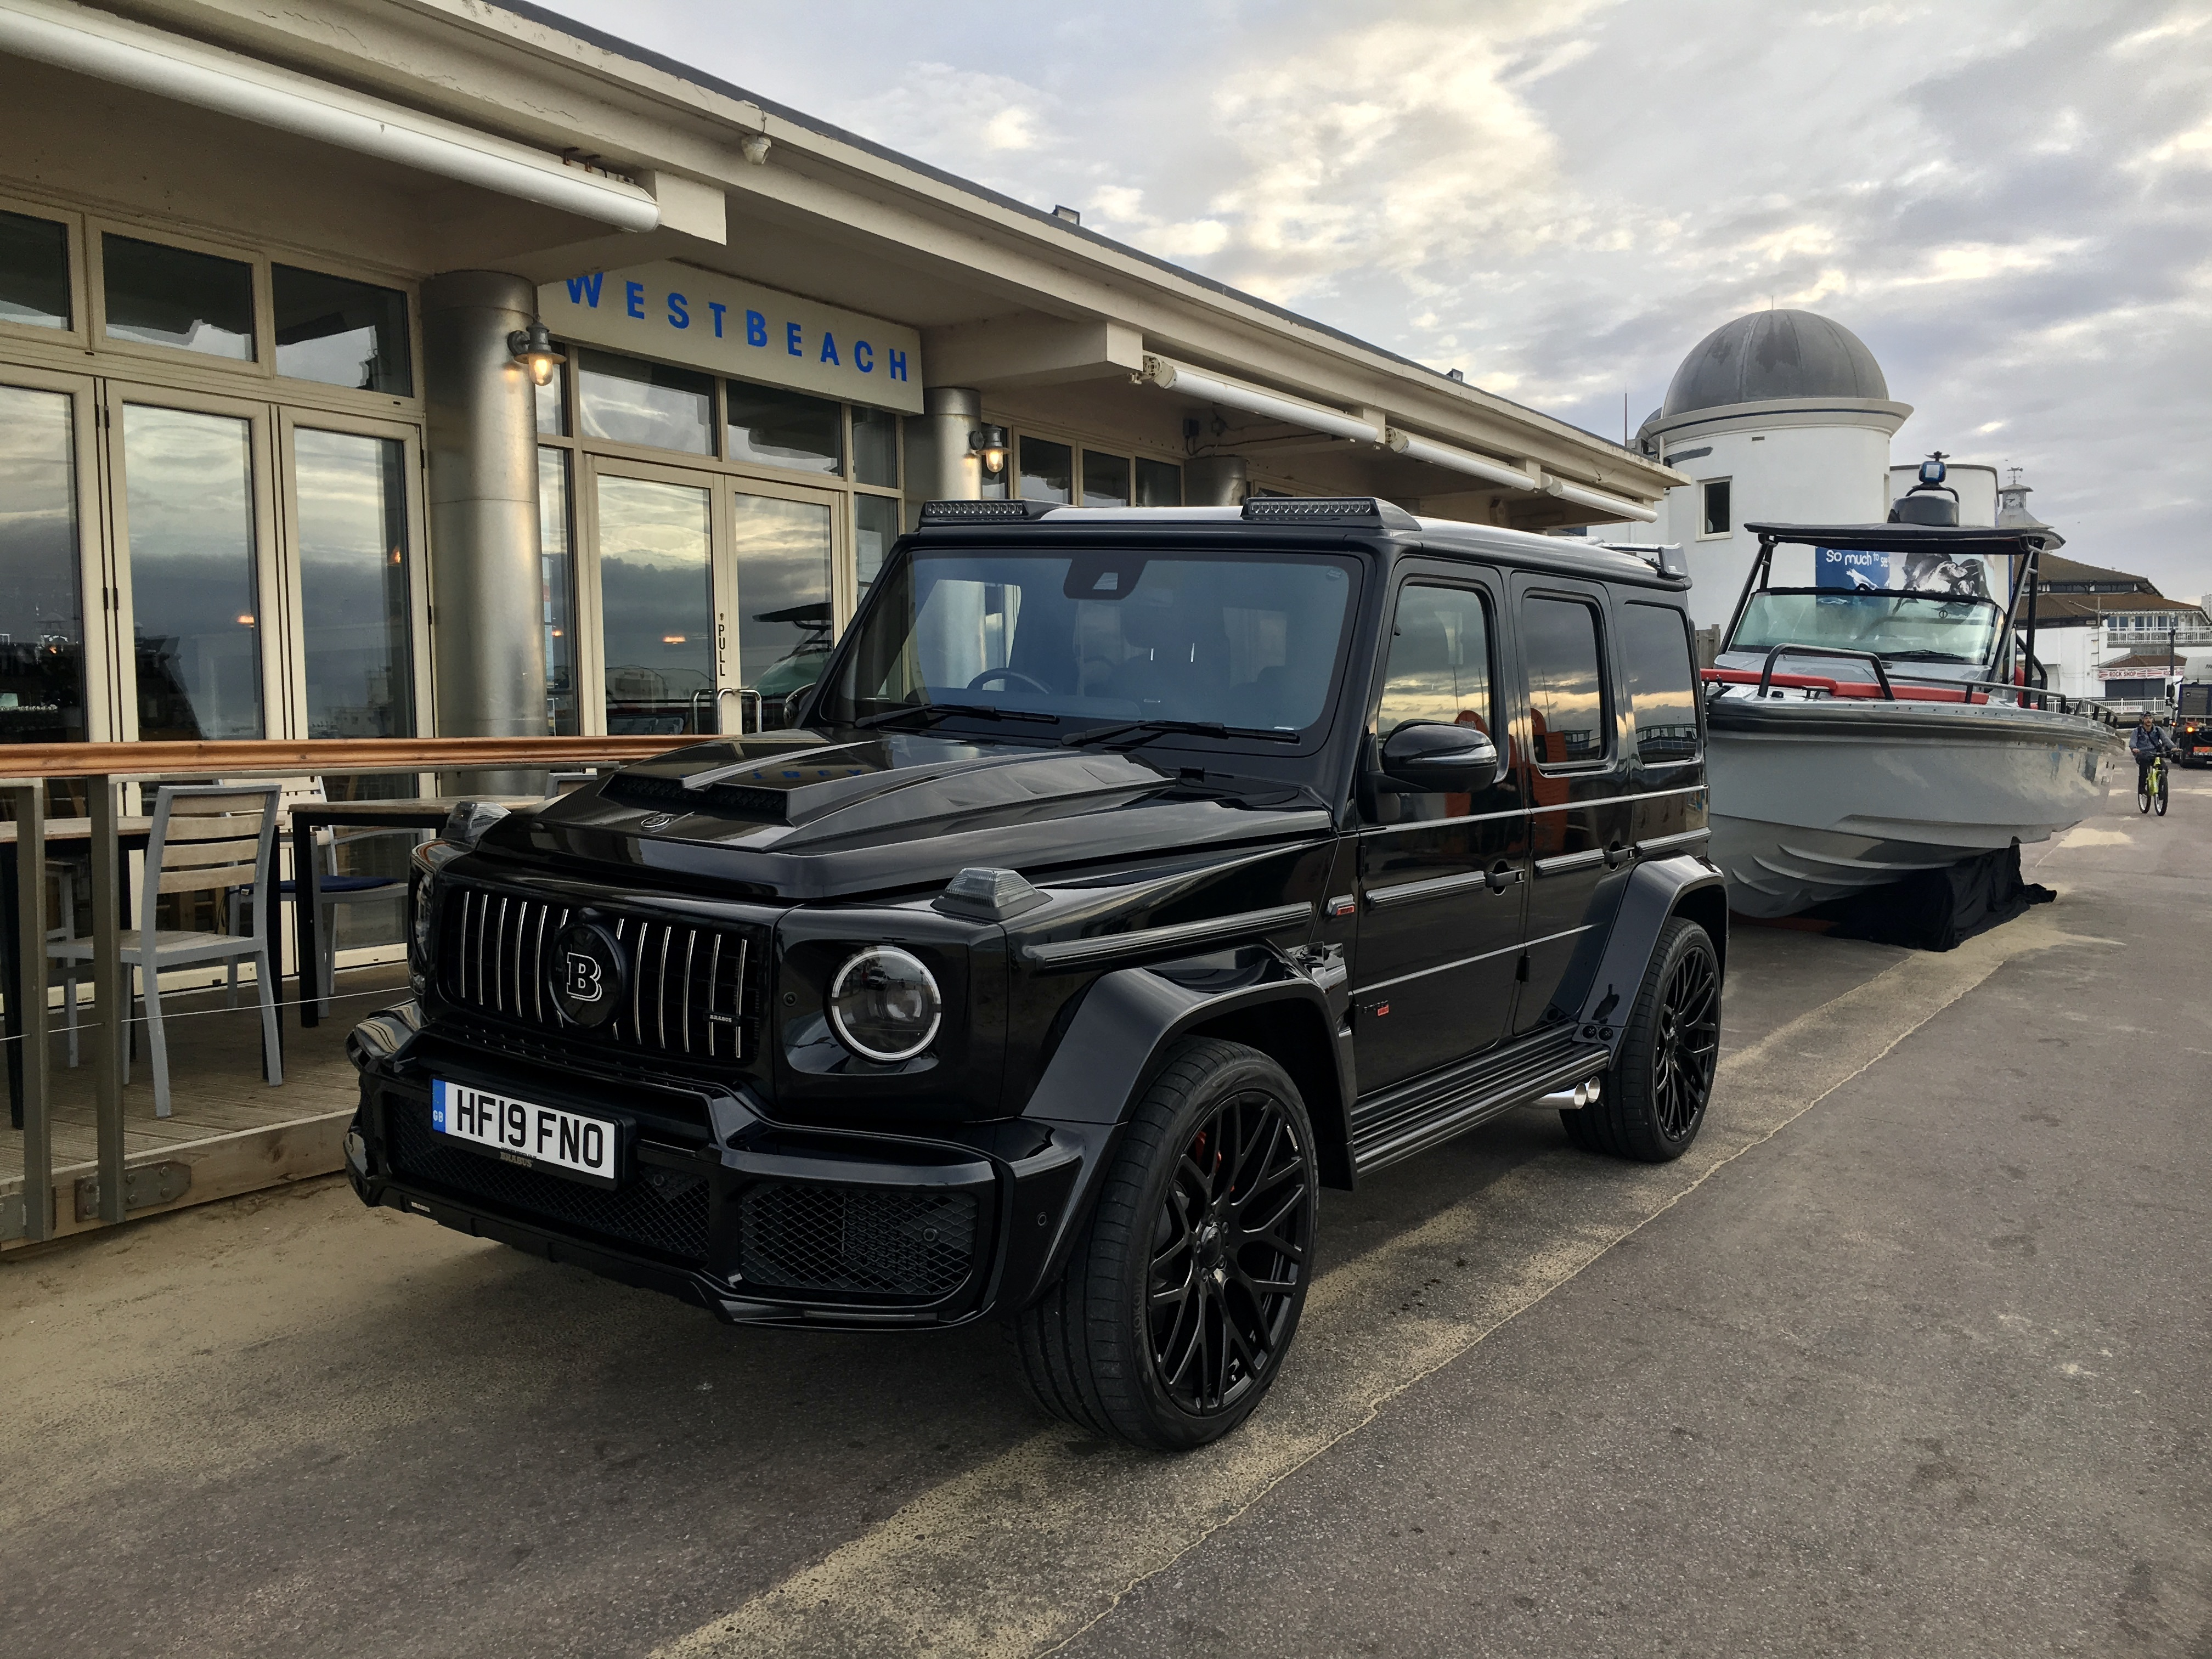 Brabus WestBeach with Boat